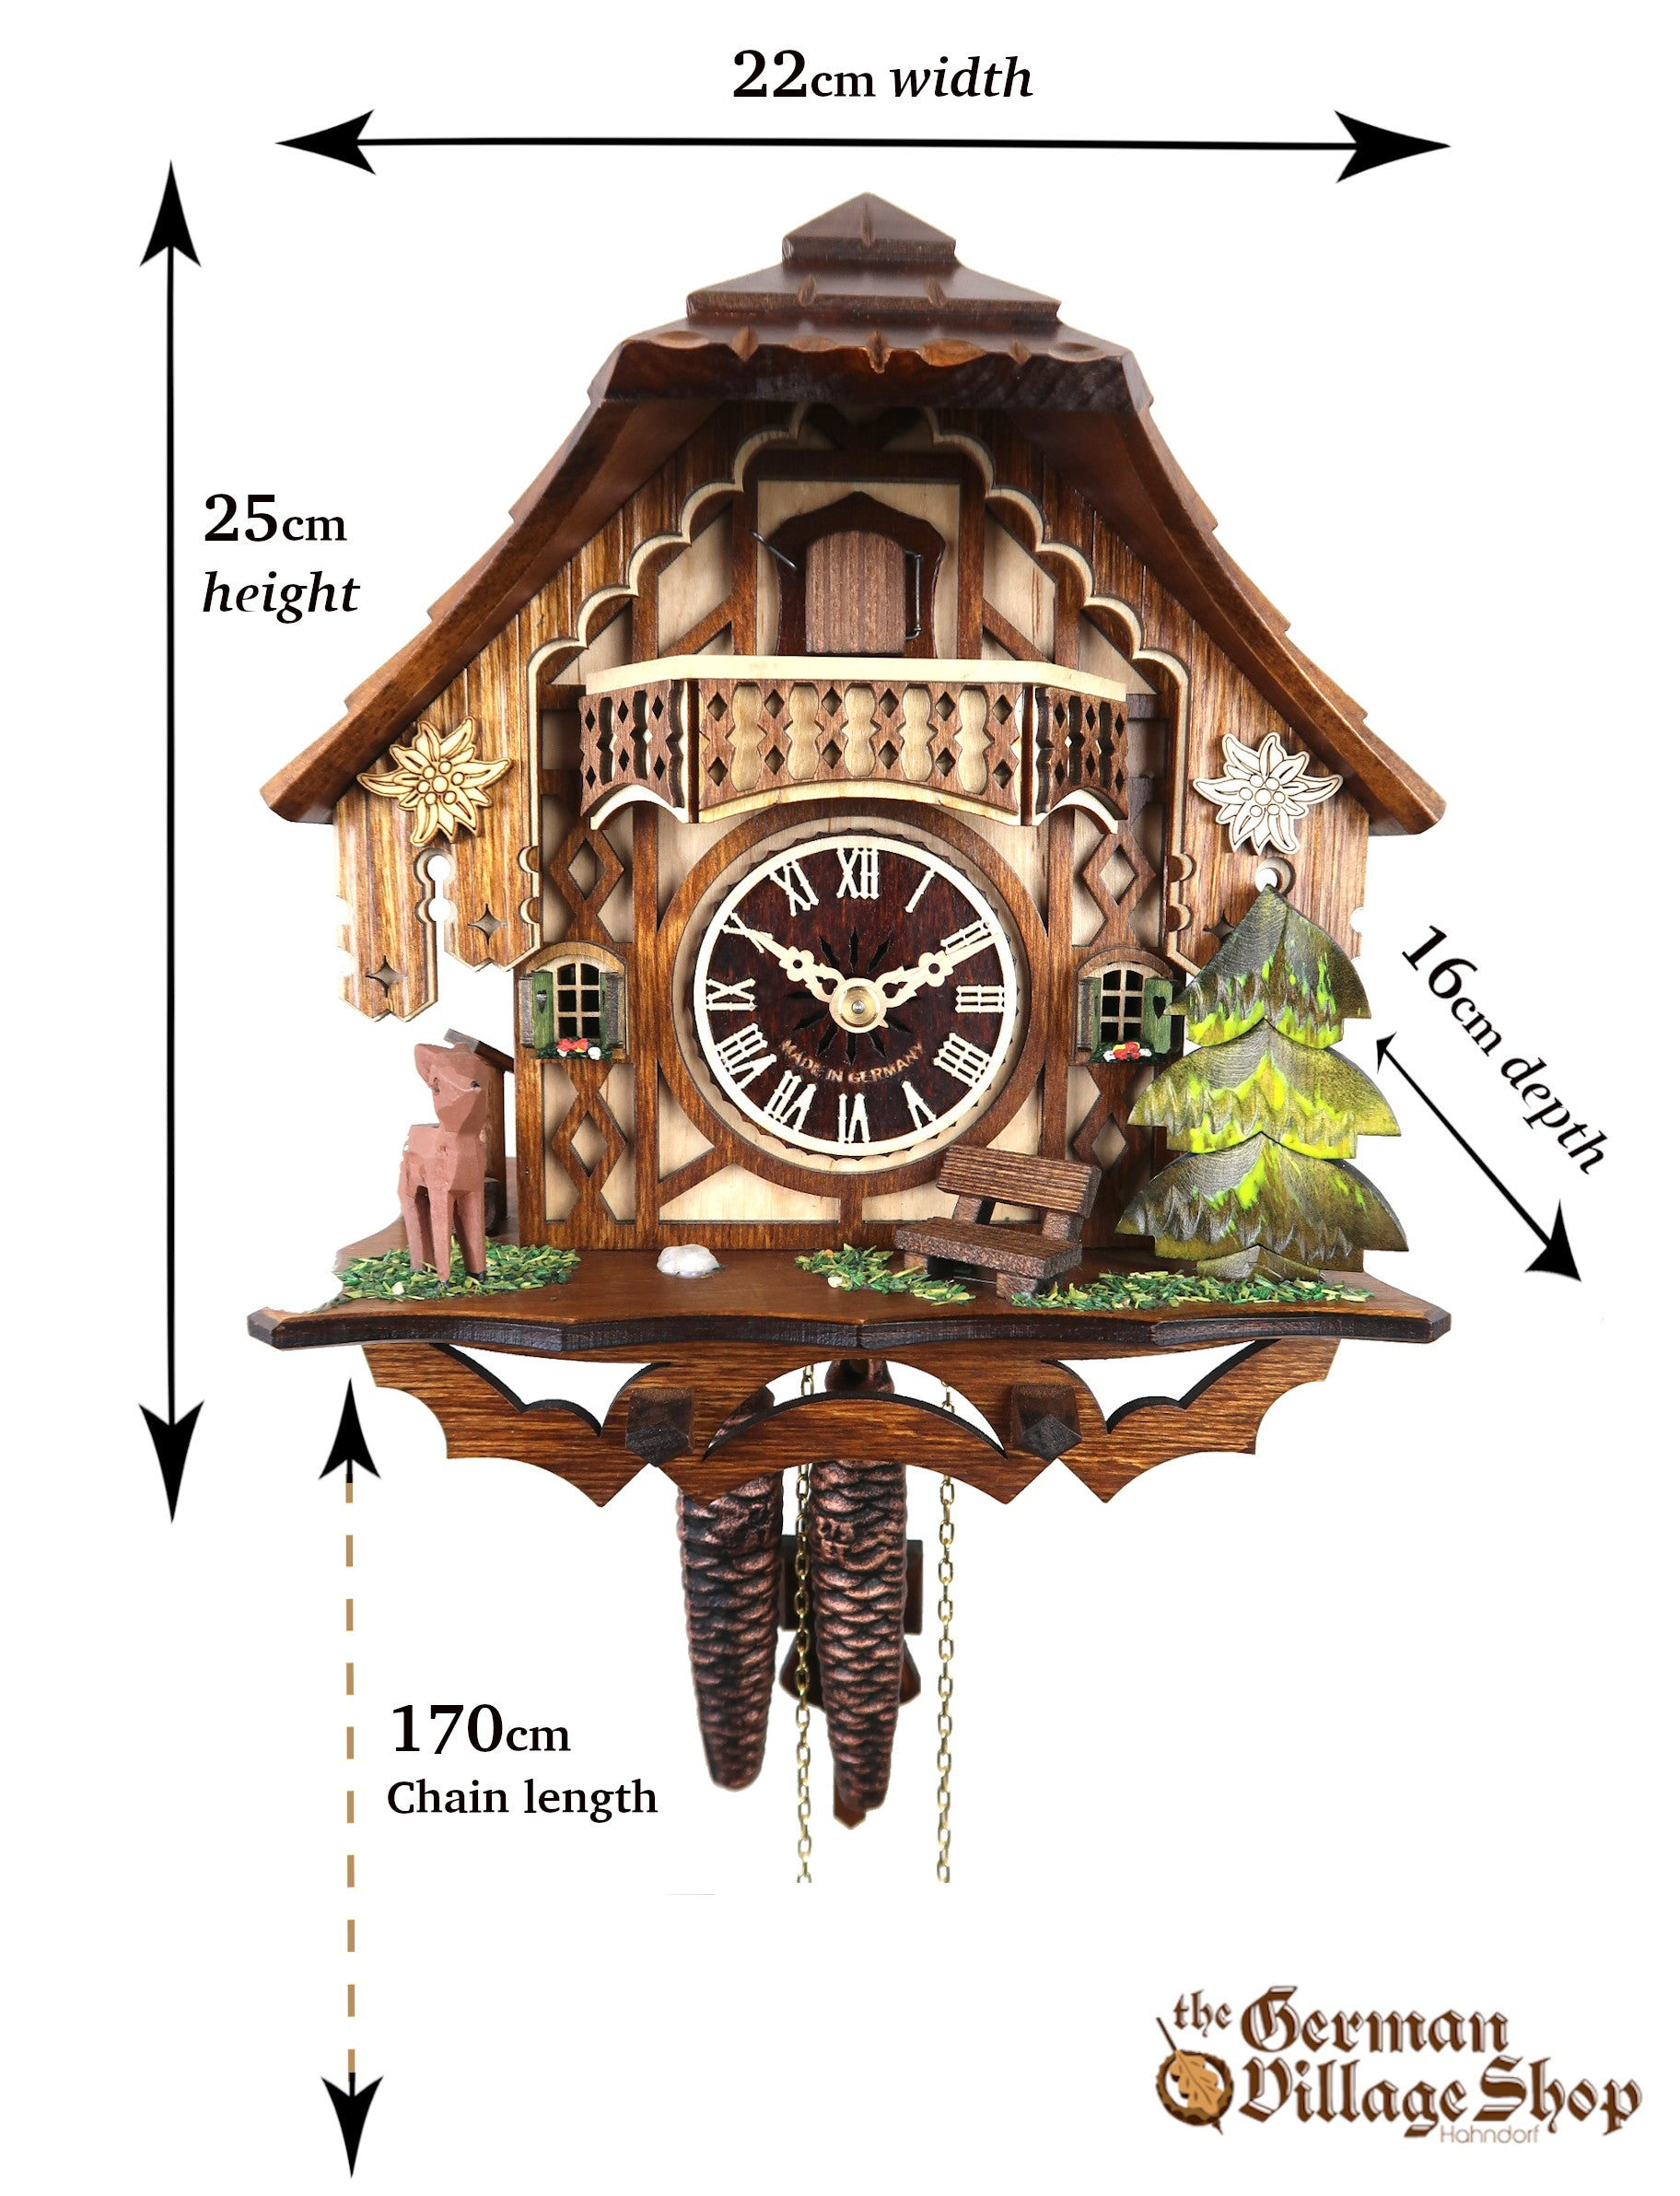 Size of German Cuckoo clock imported and sold in Australia